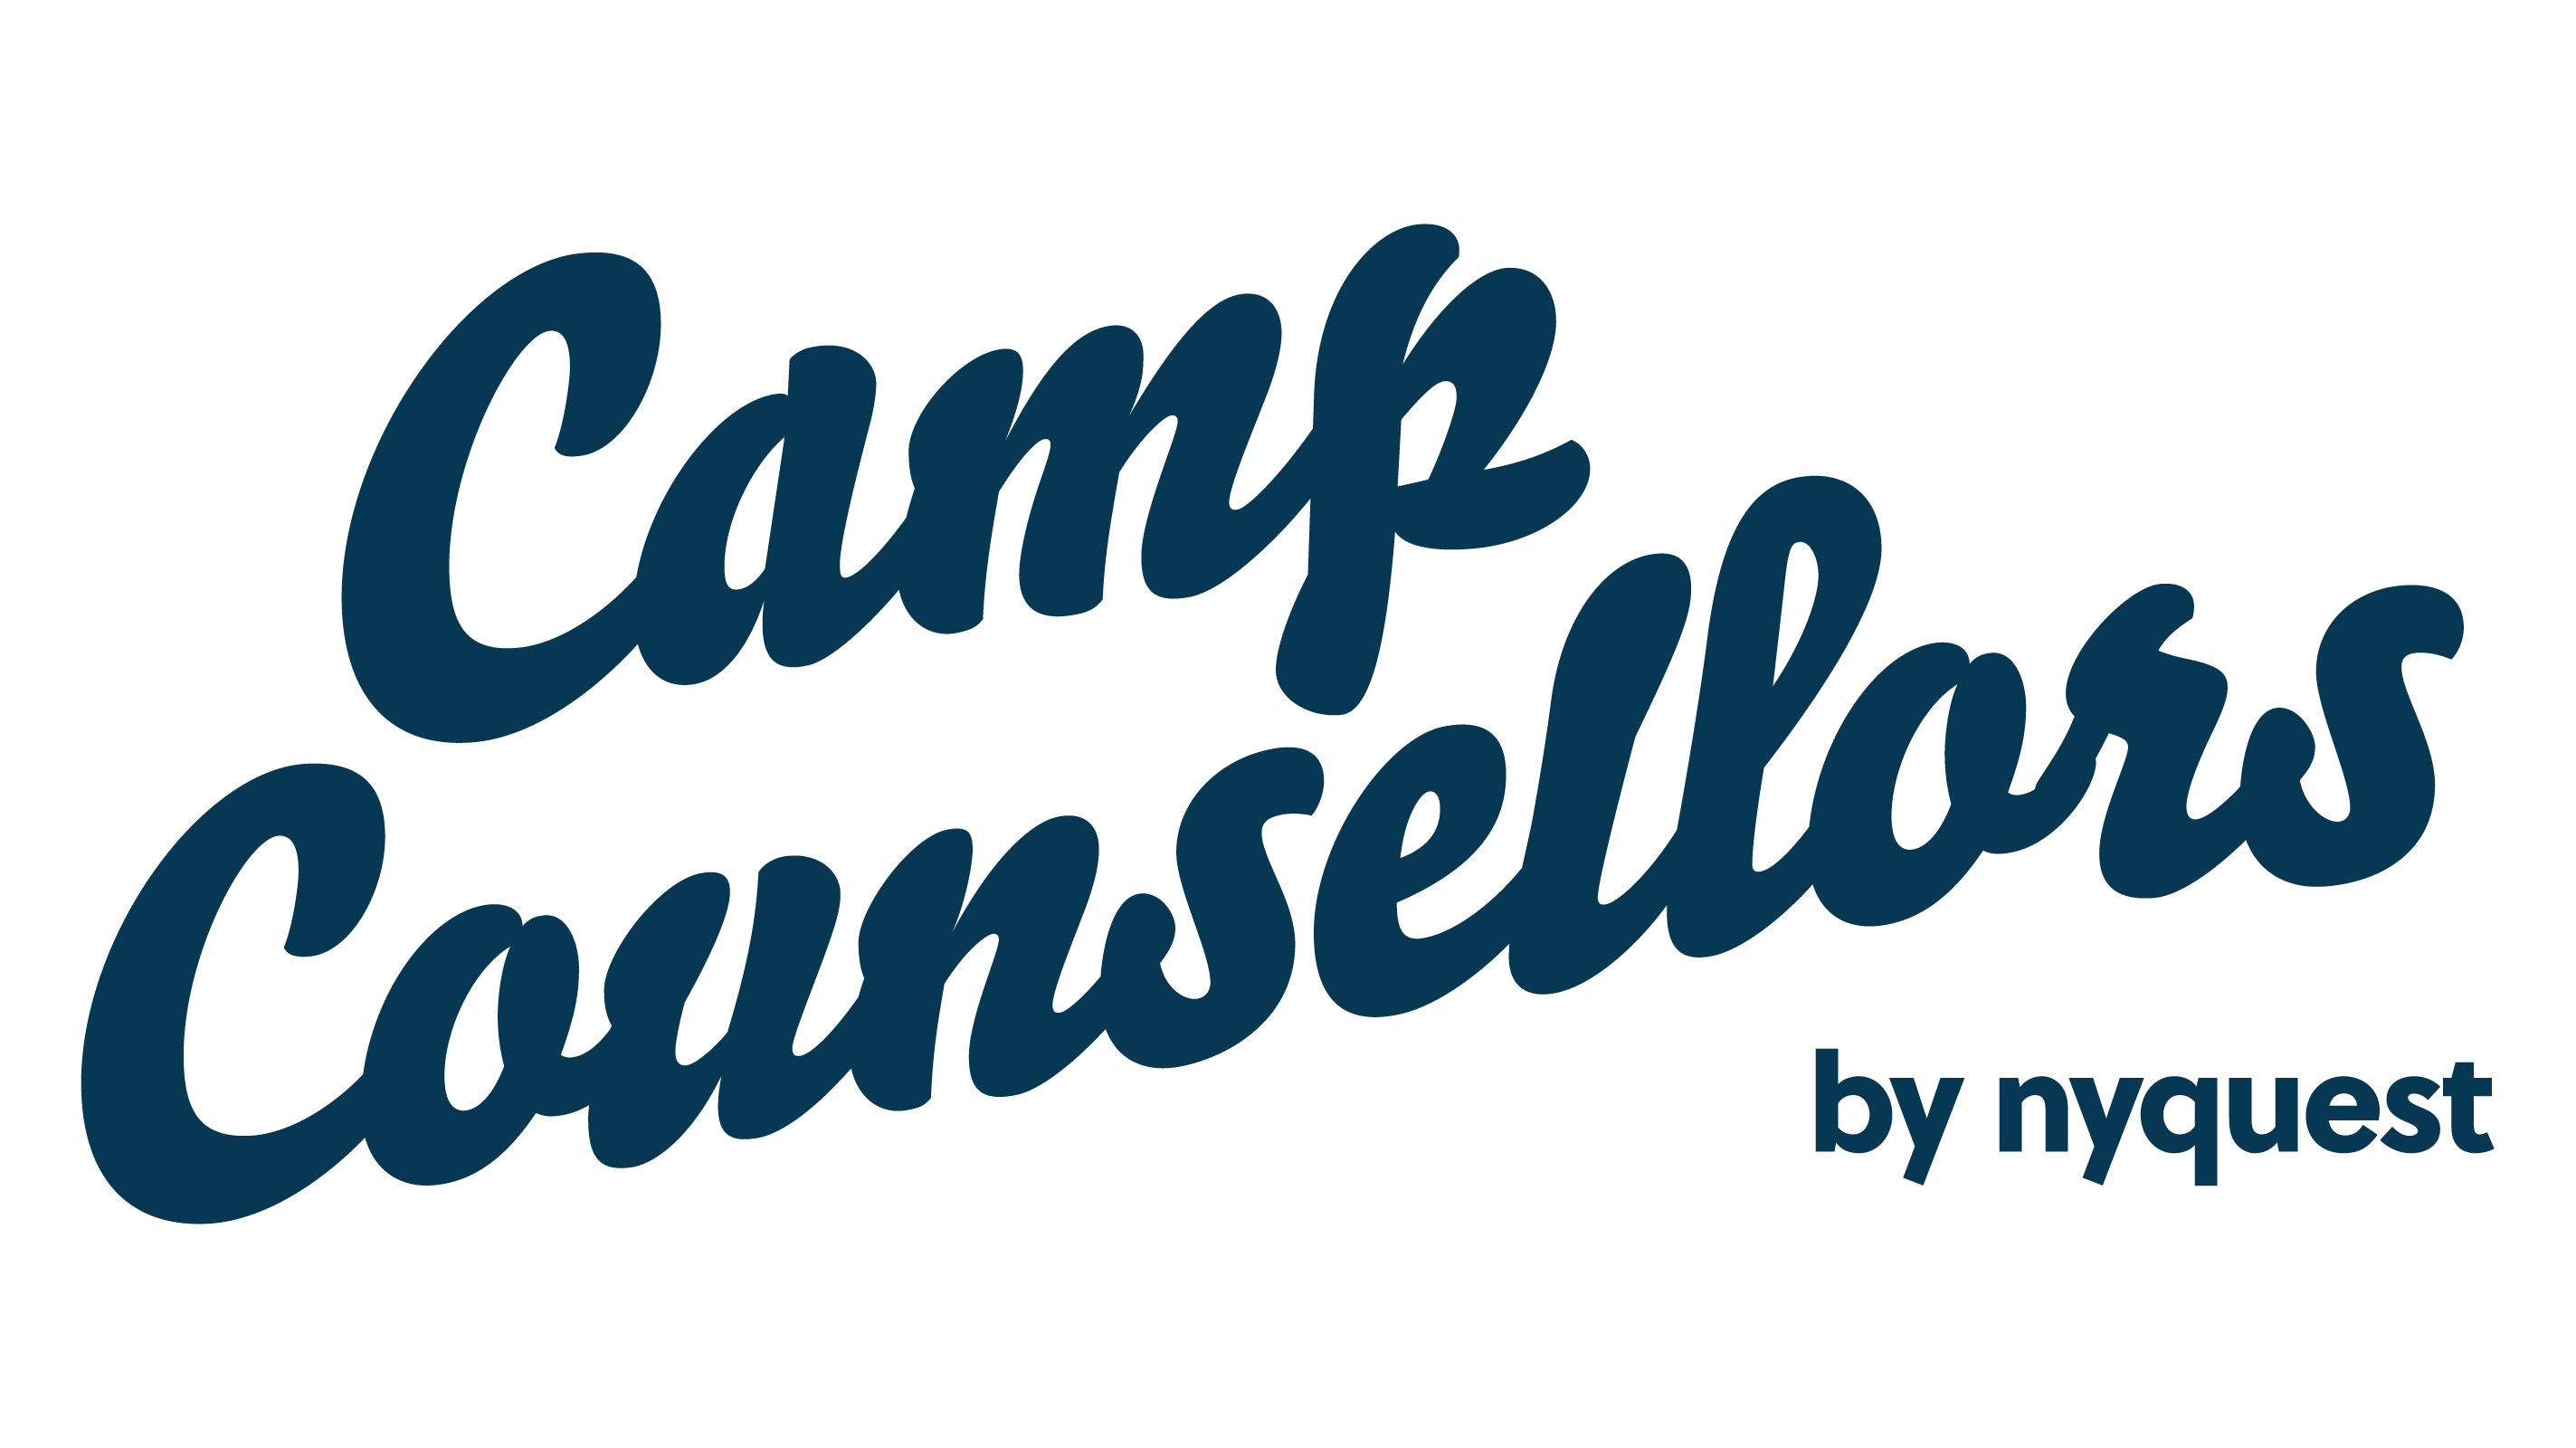 Camp Counsellors by Nyquest